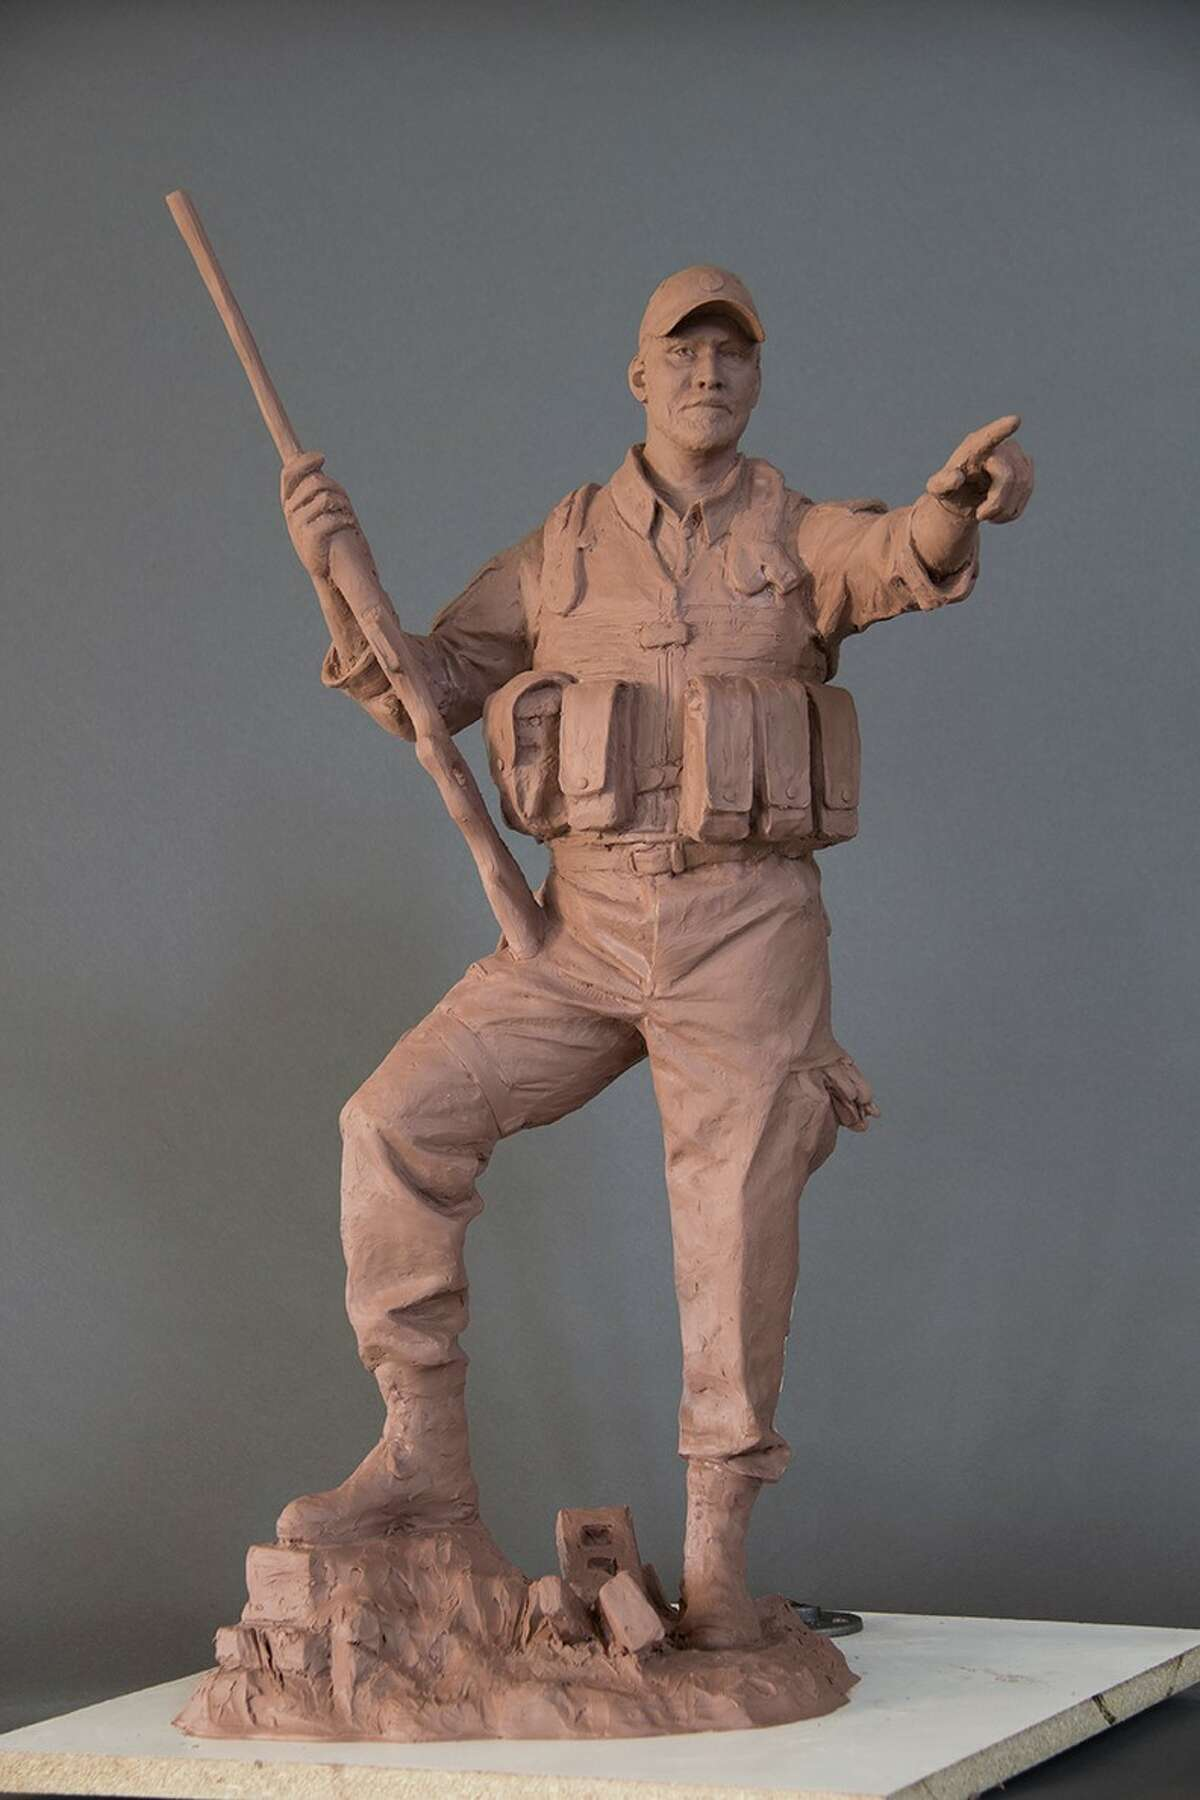 A clay mockup of the Chris Kyle statue set to be displayed in Odessa, Kyle's birthplace.